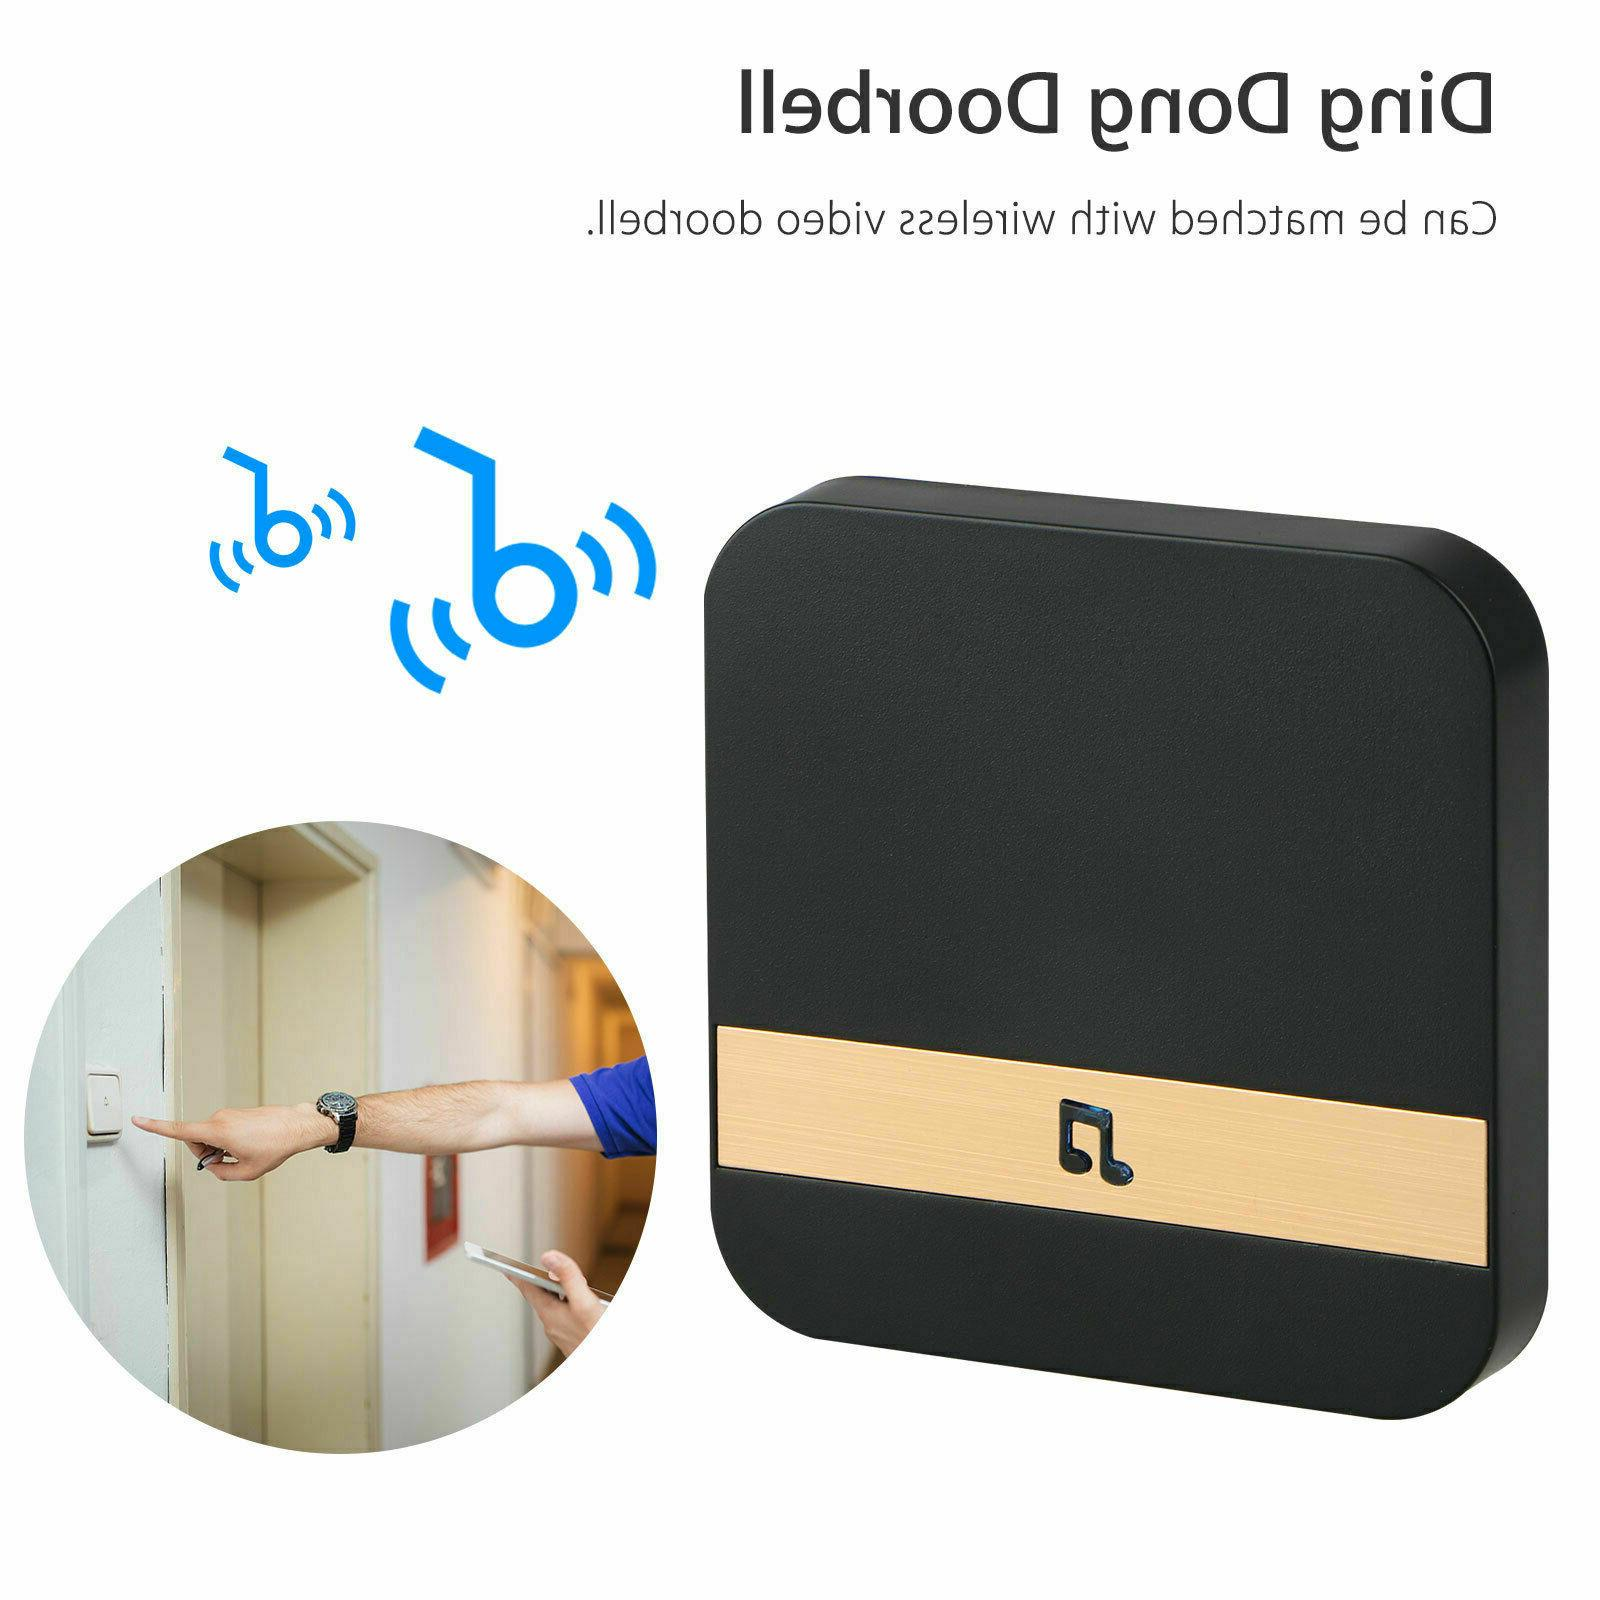 Wireless WiFi Doorbell Chime Ding-Dong Visual Door Bell Smar